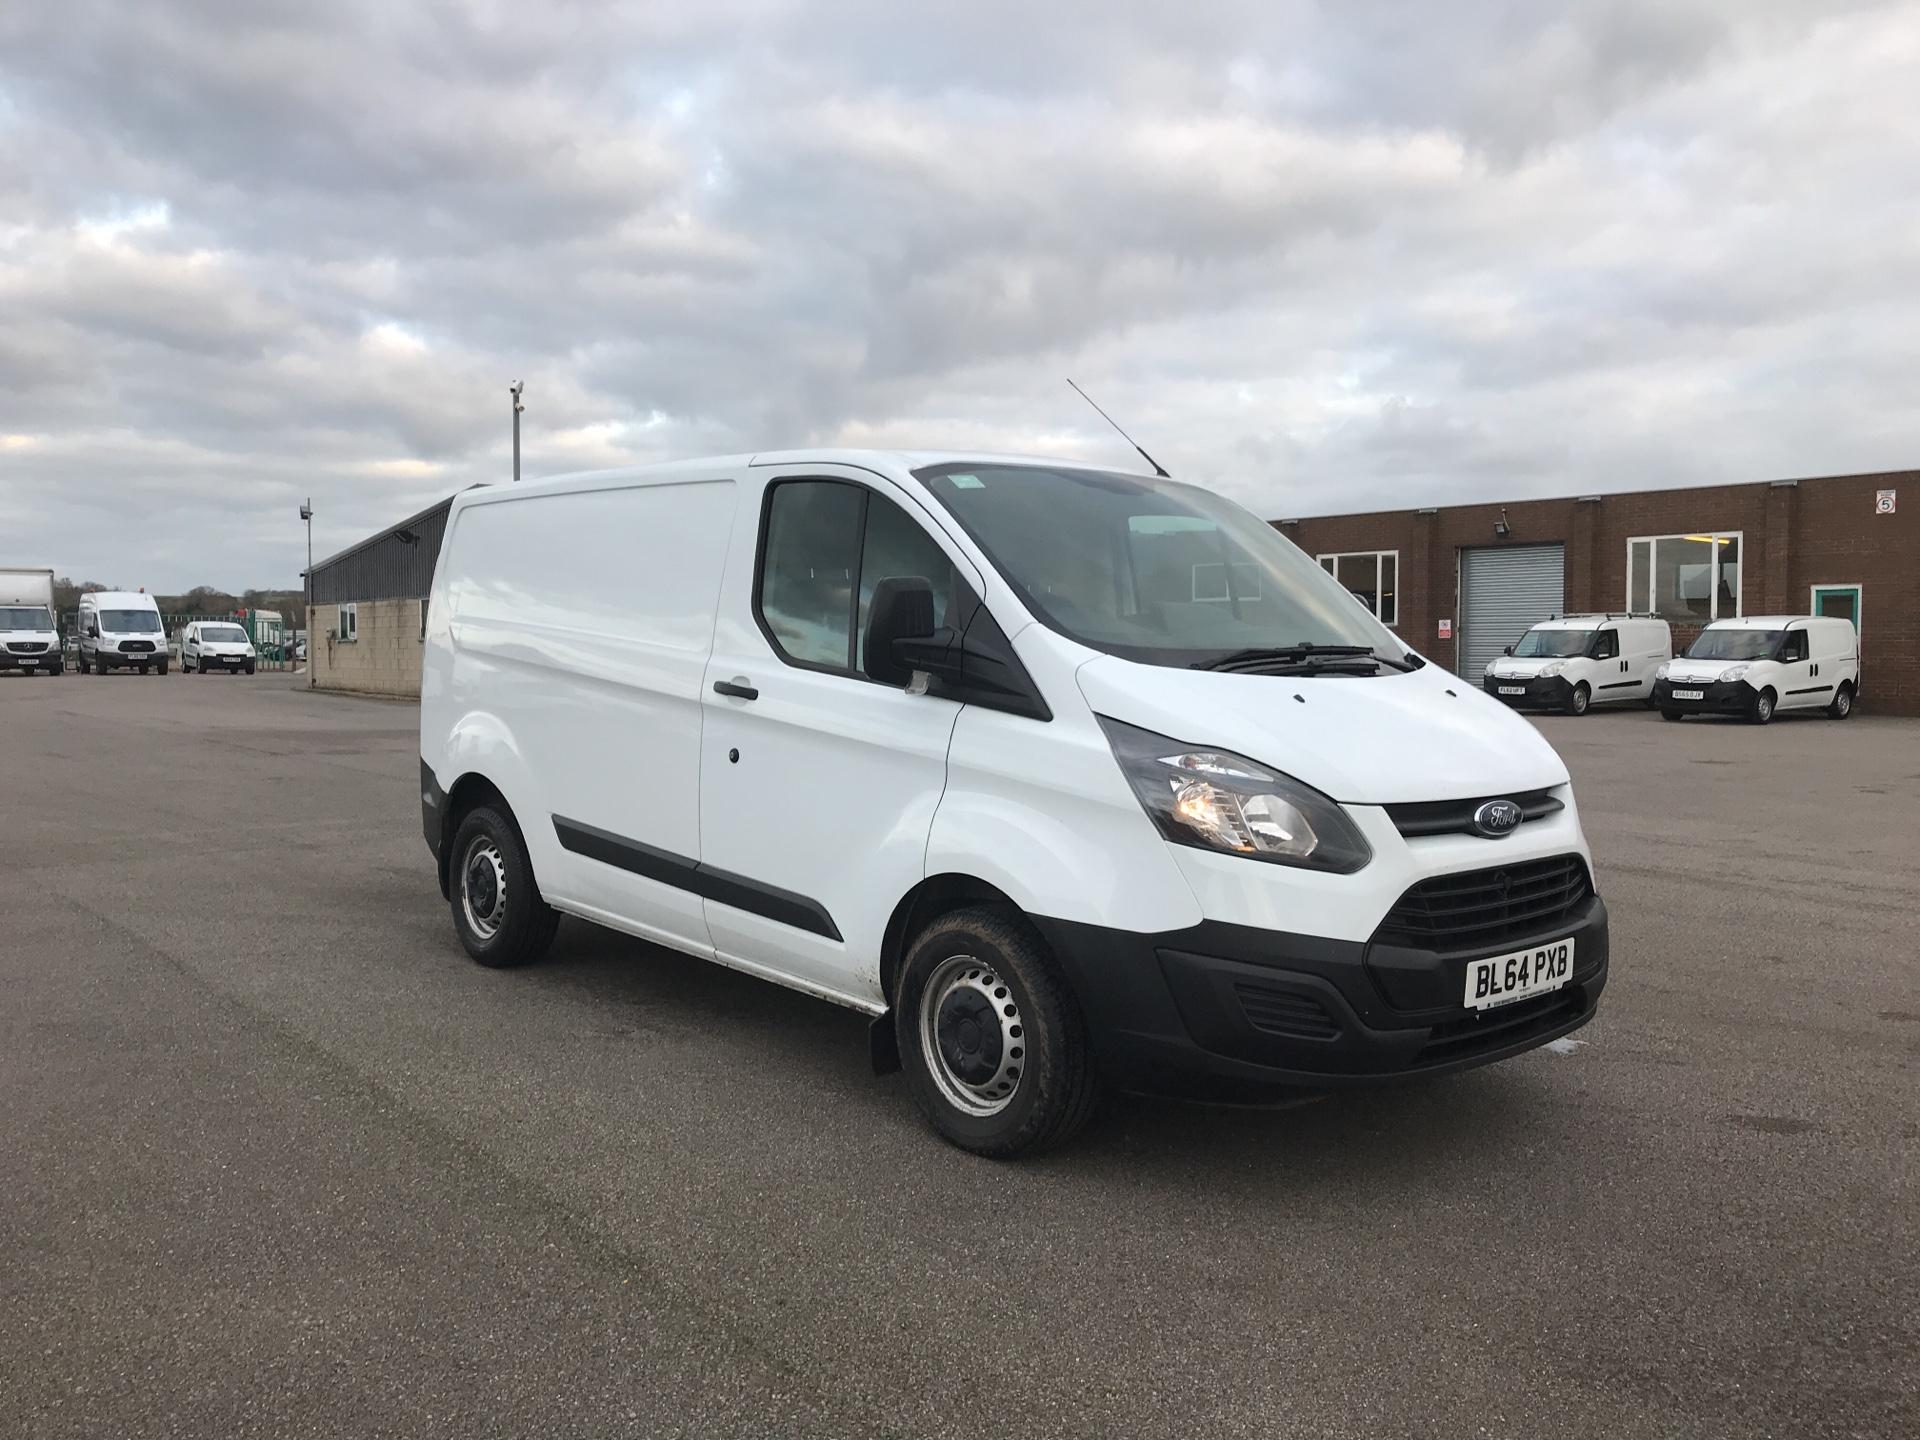 2015 Ford Transit Custom 290 L1 DIESEL FWD 2.2 TDCI 100PS LOW ROOF VAN EURO 5 (BL64PXB)